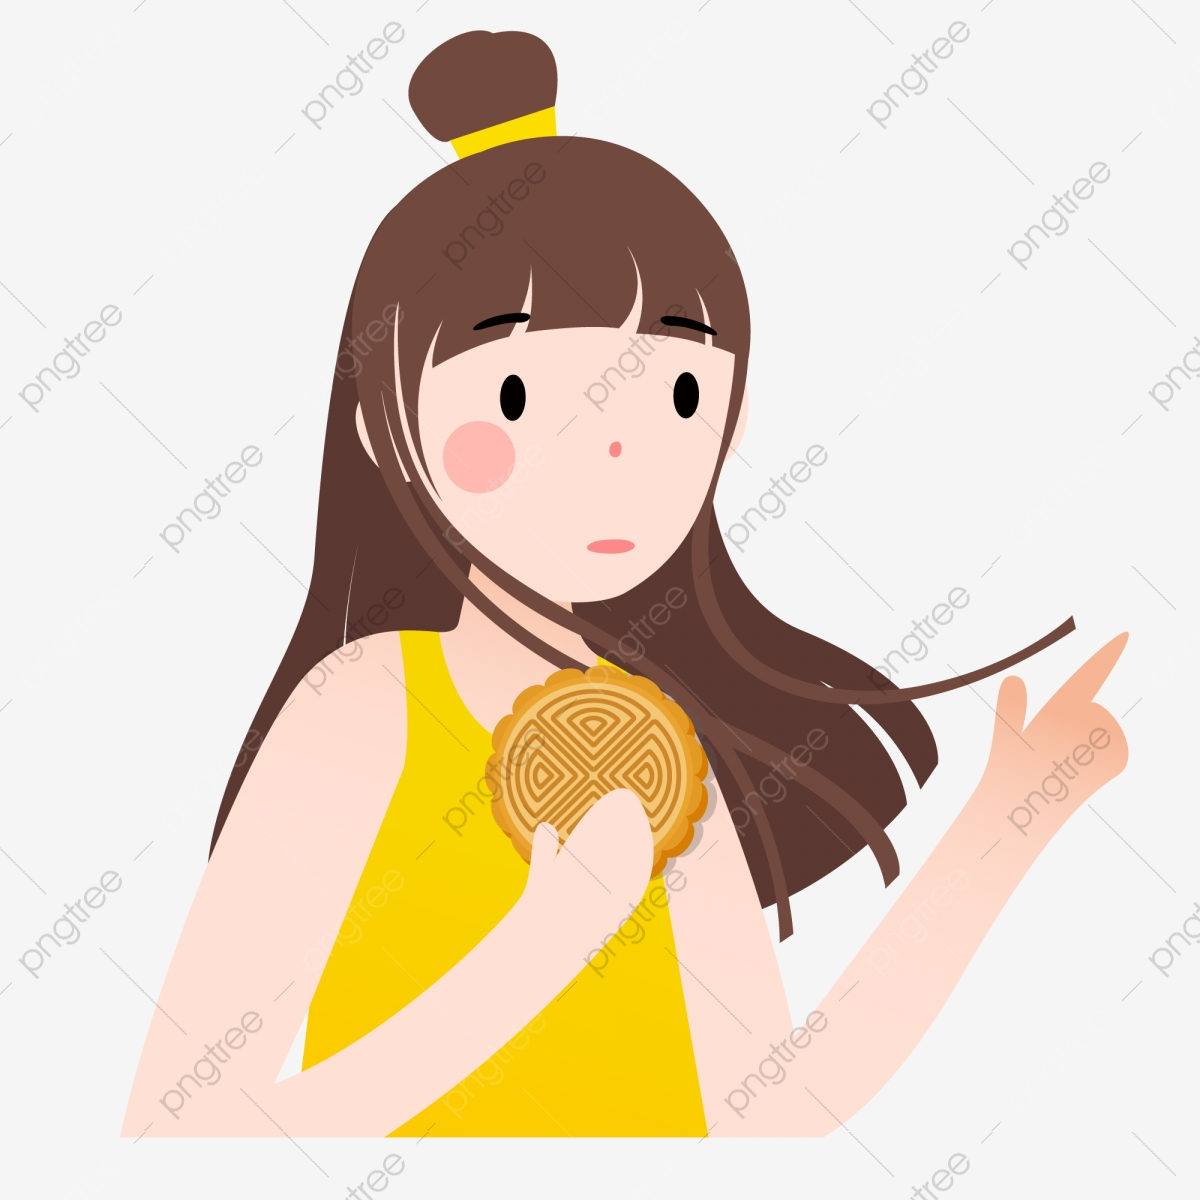 Cartoon Girl Eating Mooncakes Delicious Mooncakes Cartoon Characters Hand Drawn Characters Png And Vector With Transparent Background For Free Download